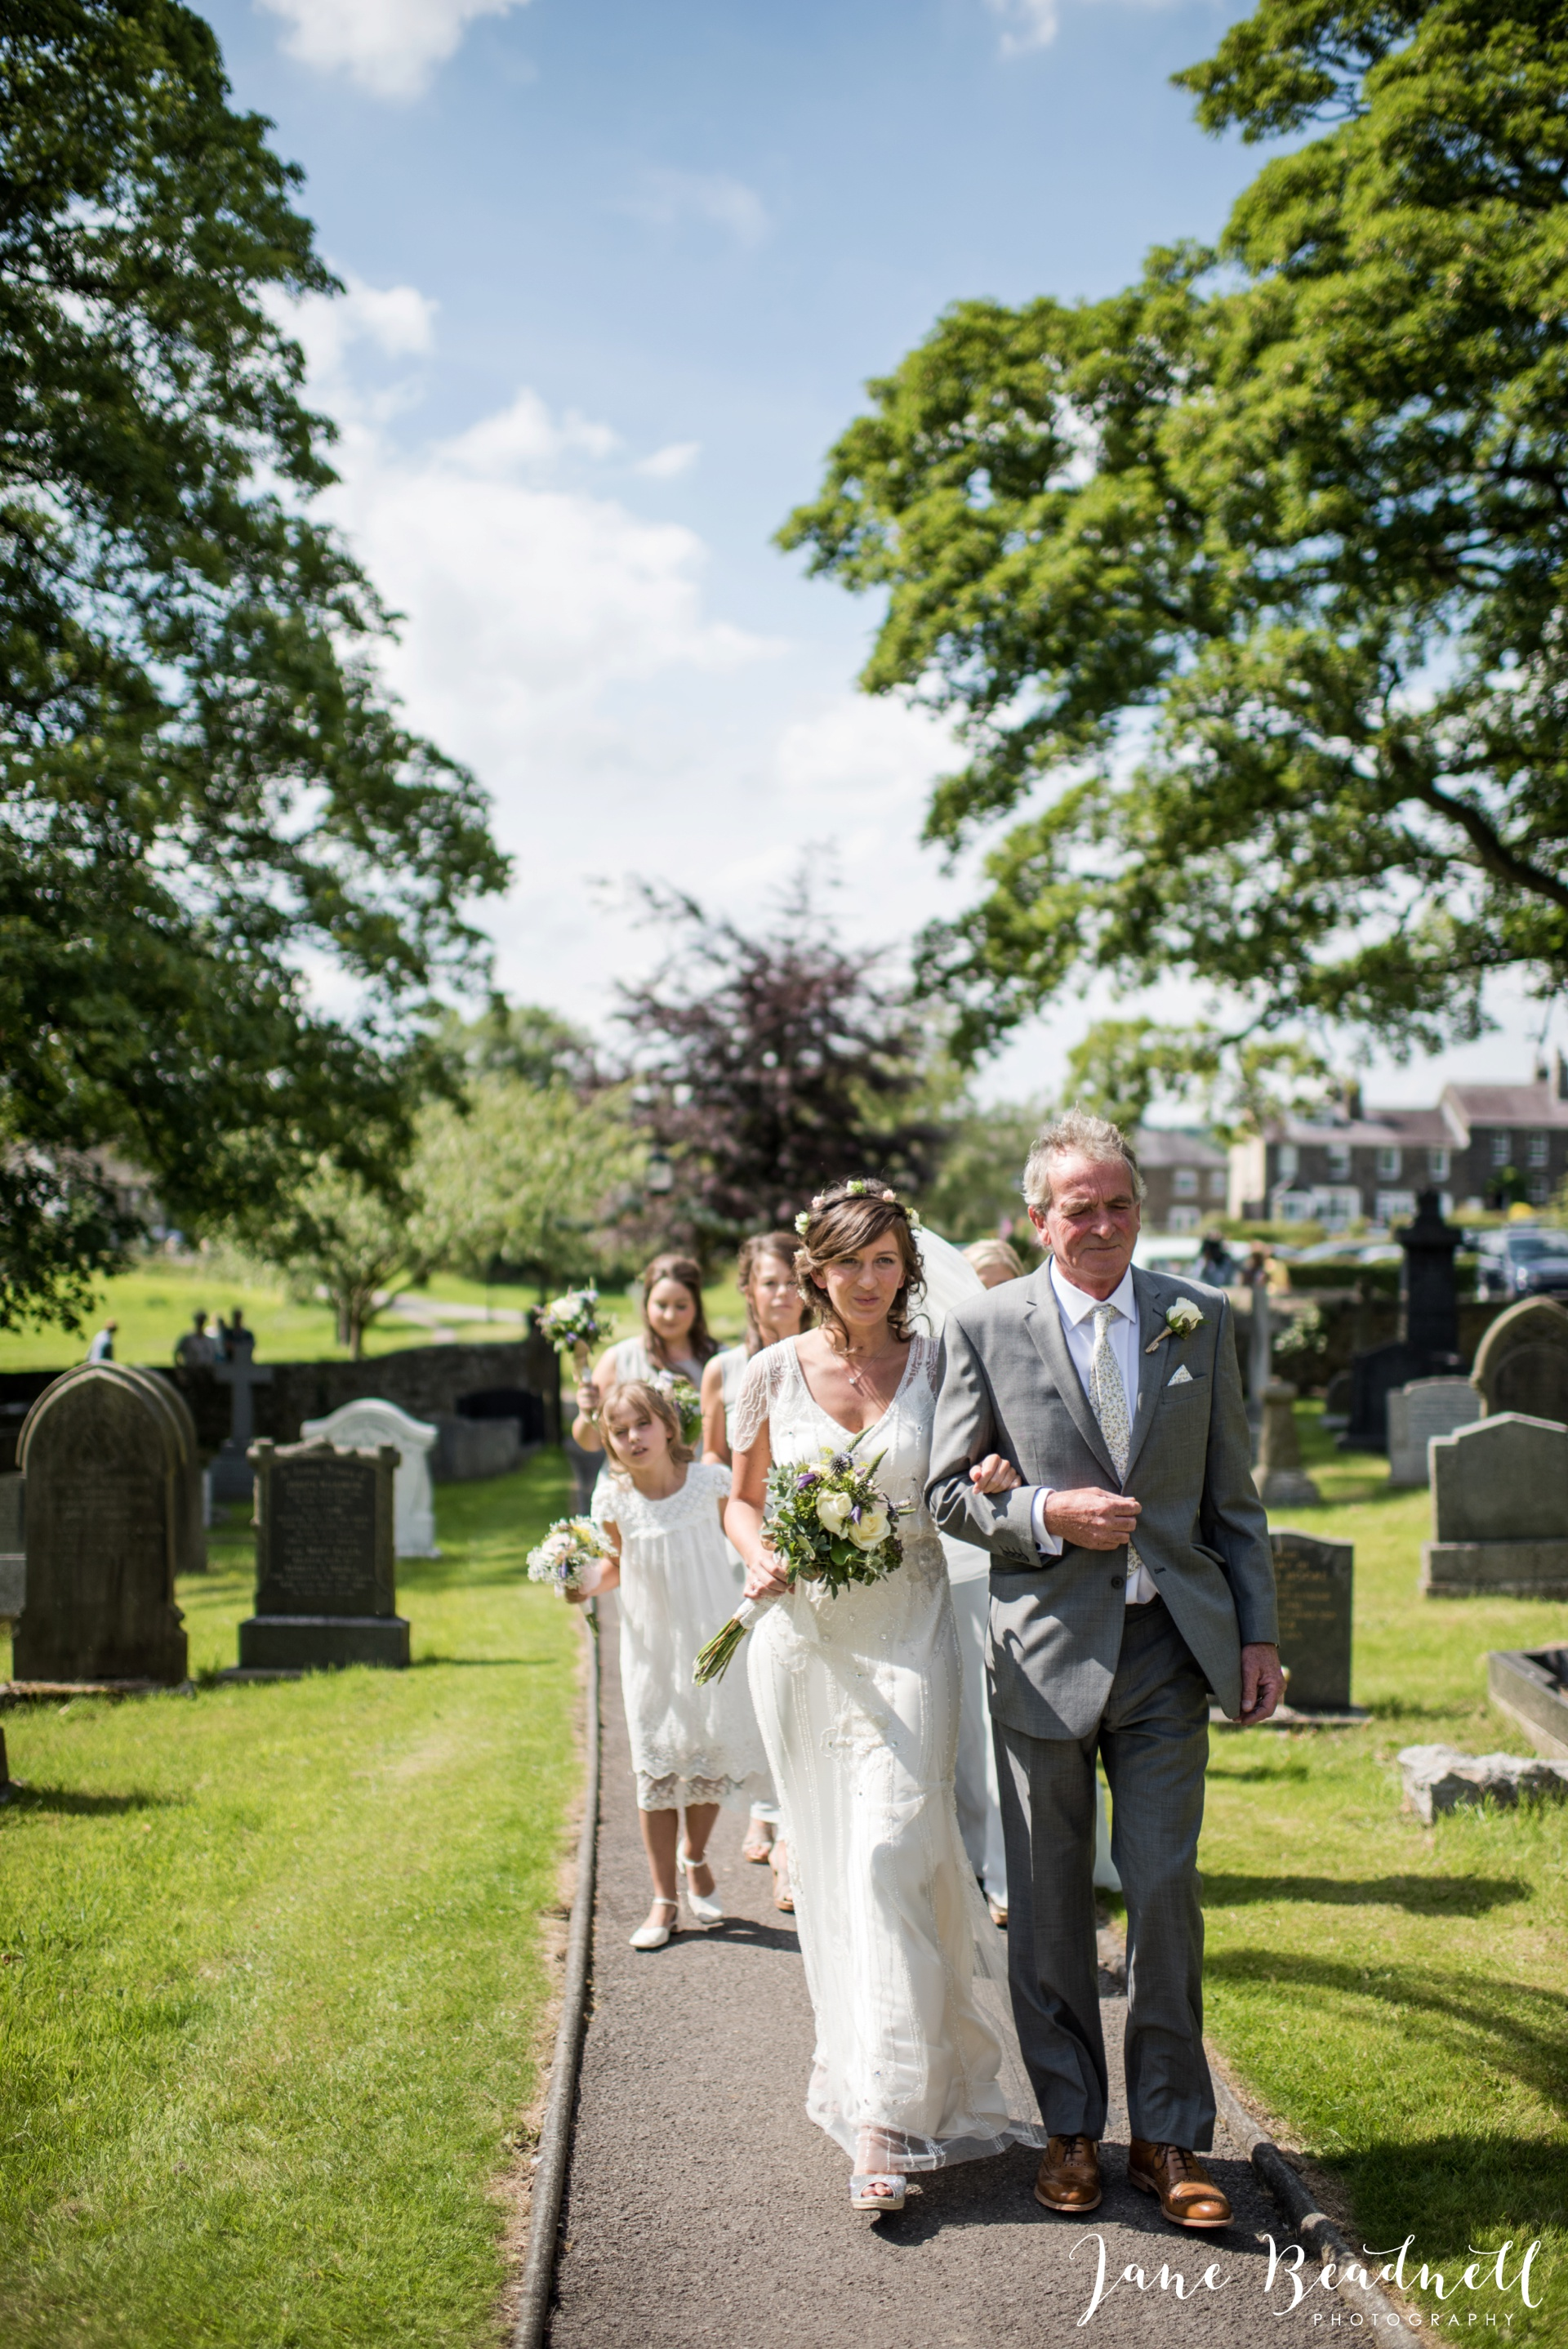 Jane Beadnell fine art wedding photographer Leeds_0035